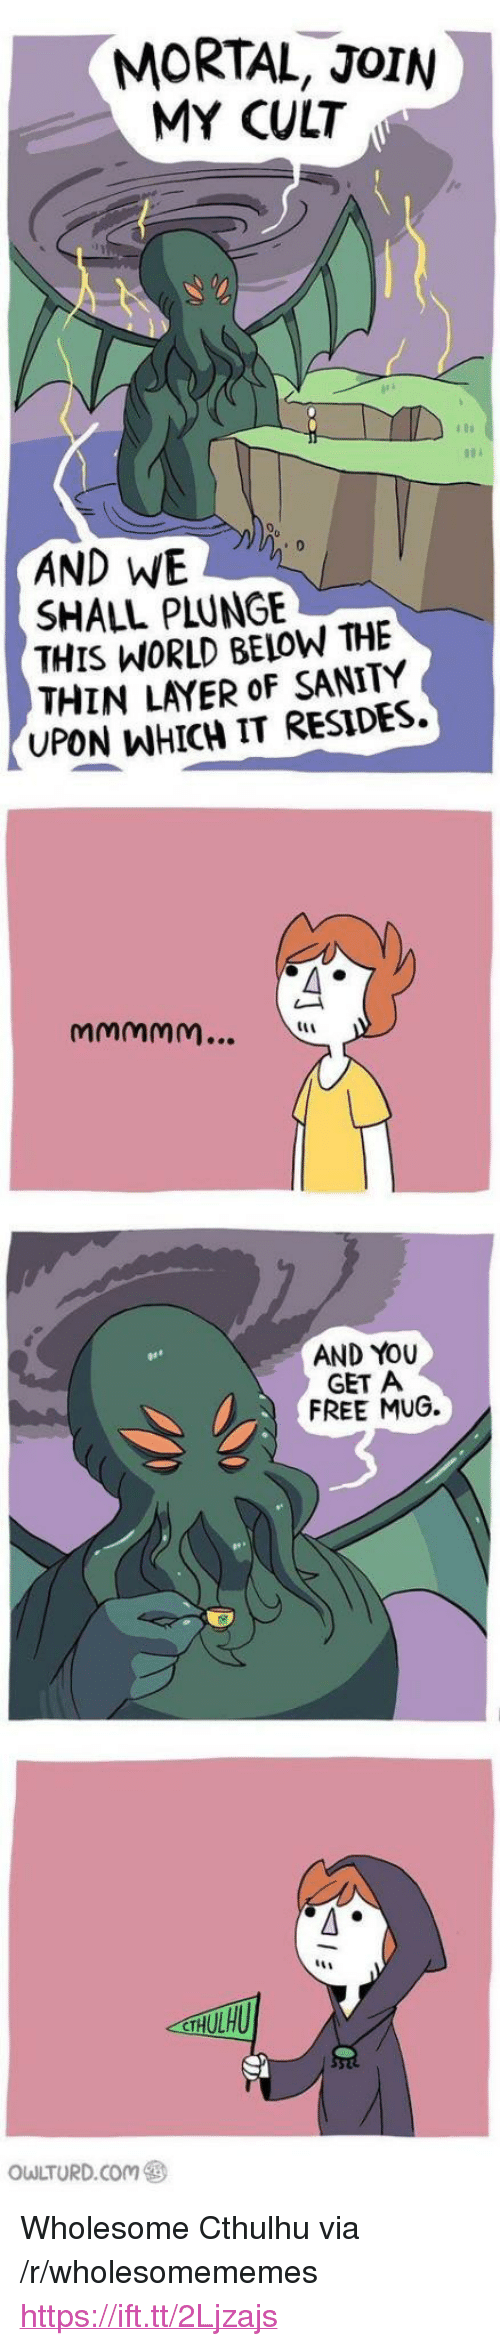 """Cthulhu, Free, and World: MORTAL, JoIN  MY CULT  AND WE  SHALL PLUNGE  THIS WORLD BELOW THE  THIN LAYER oF SANITY  UPON WHICH IT RESIDES  AND YOU  GET A  FREE MUG.  owLTURD.com ㊧ <p>Wholesome Cthulhu via /r/wholesomememes <a href=""""https://ift.tt/2Ljzajs"""">https://ift.tt/2Ljzajs</a></p>"""